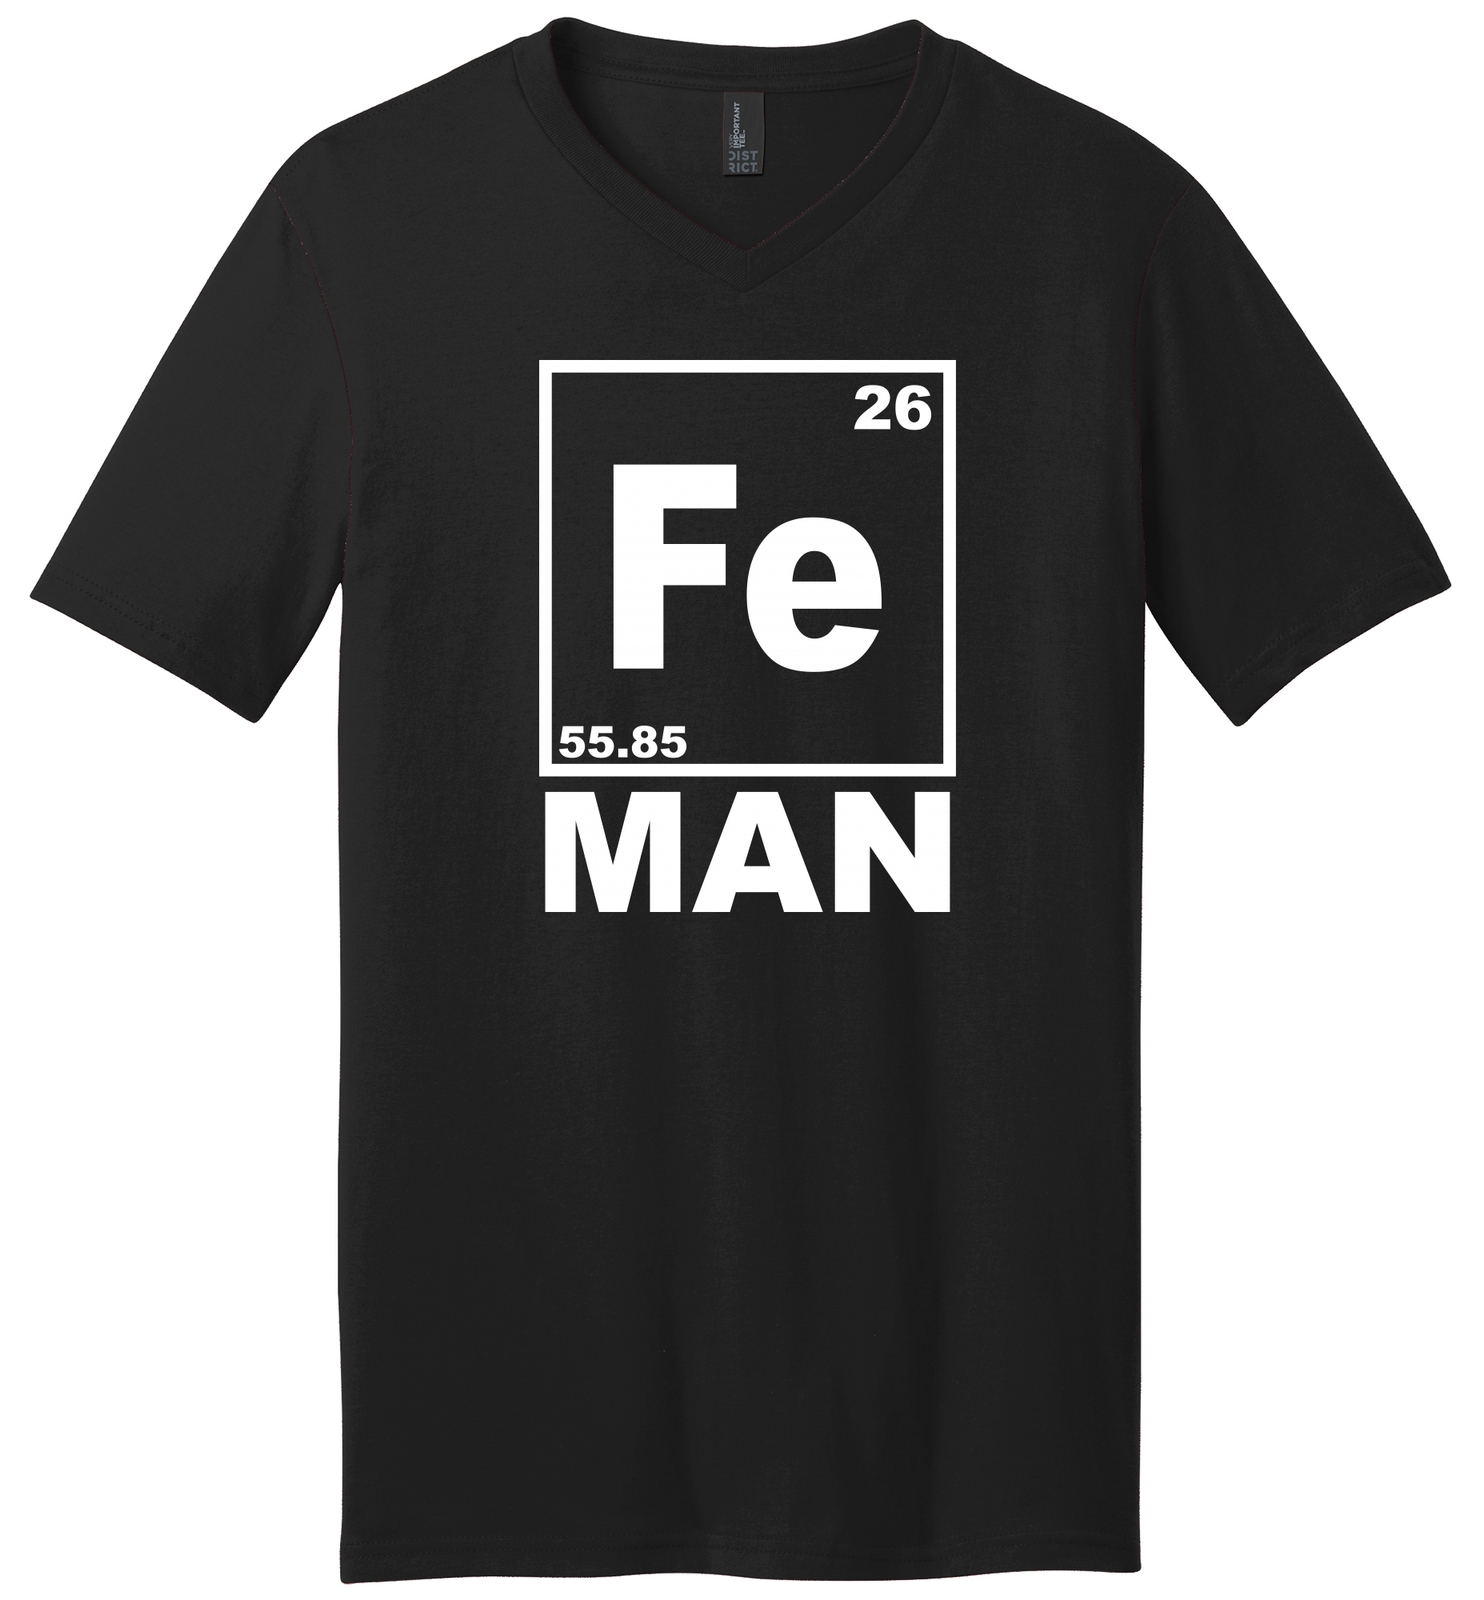 Fe Man Funny T Shirt Iron Man Chemistry Periodic Table Elements Mens V-Neck Tee for sale  USA